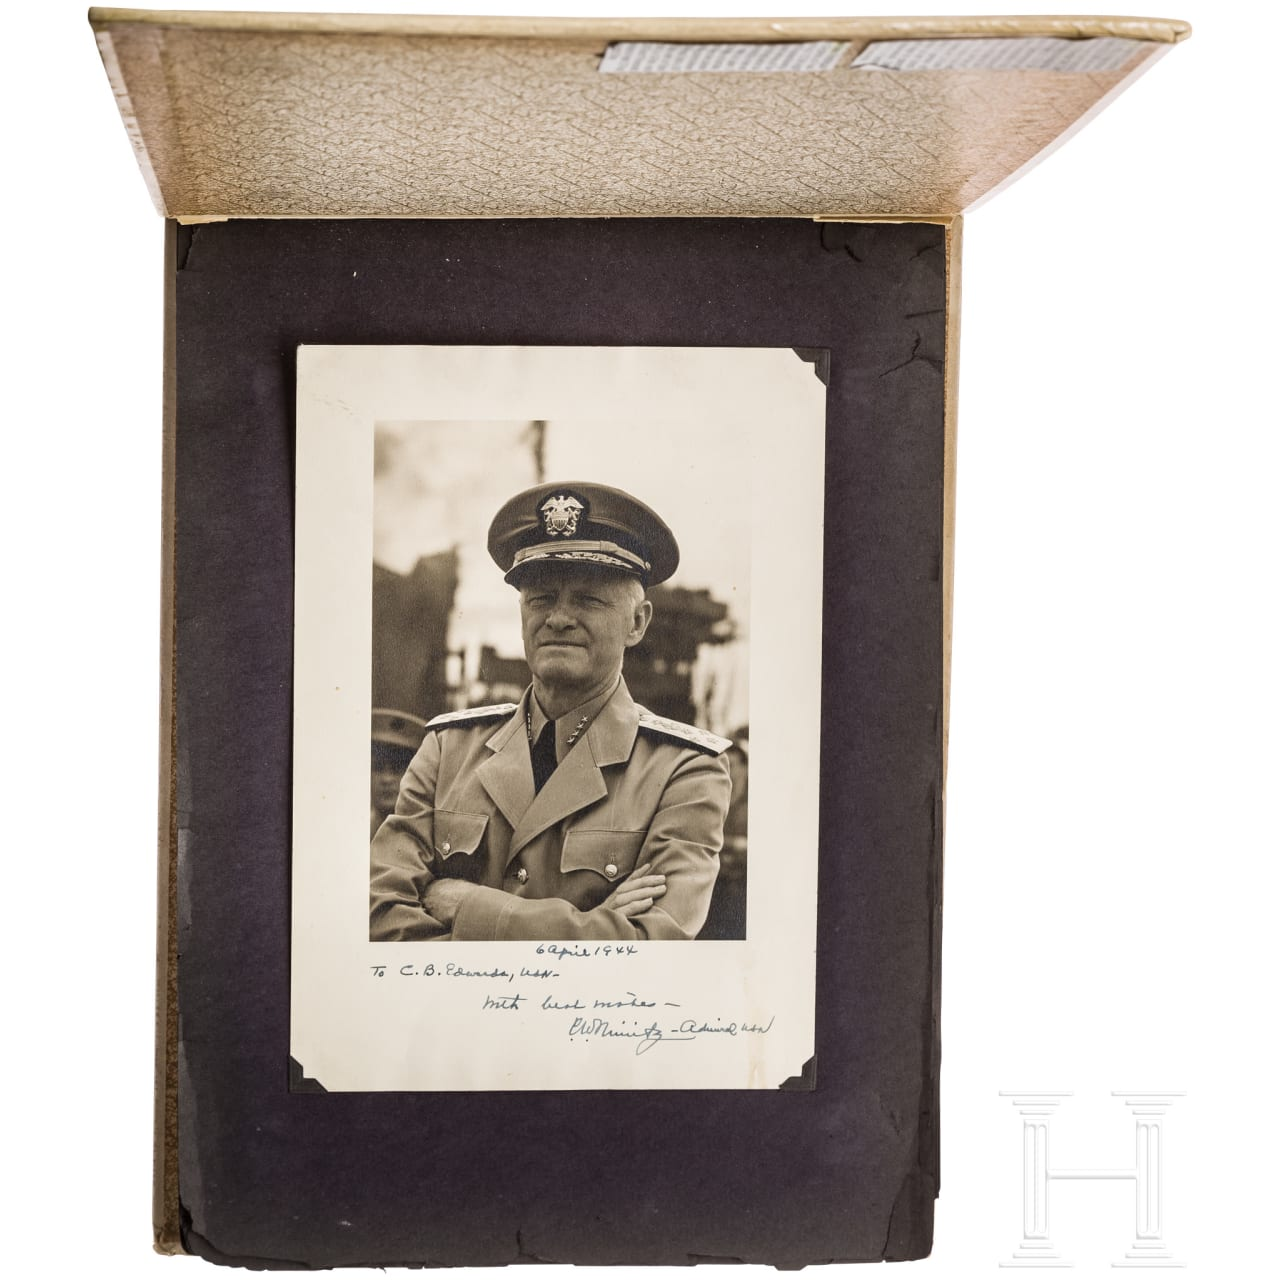 Signalman 1st Class Carl B Edwards - photo and memory album with autographs by fleet admiral Chester W. Nimitz 1938 - 1943